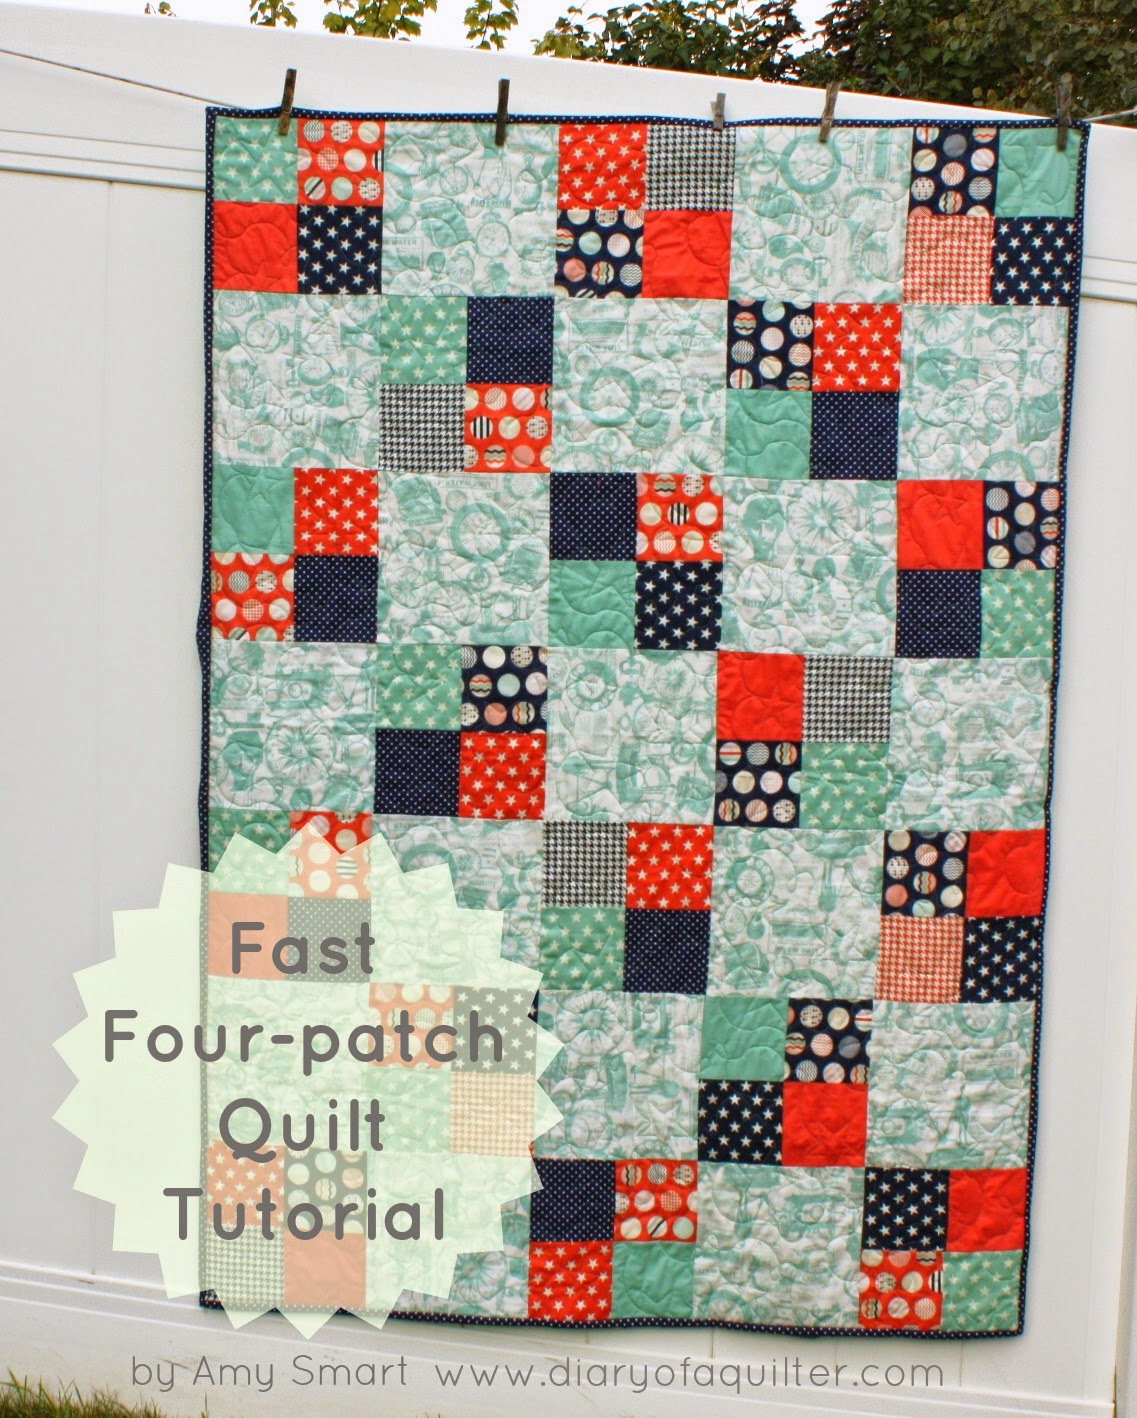 Fast Four Patch Quilt Tutorial Diary Of A Quilter A Quilt Blog